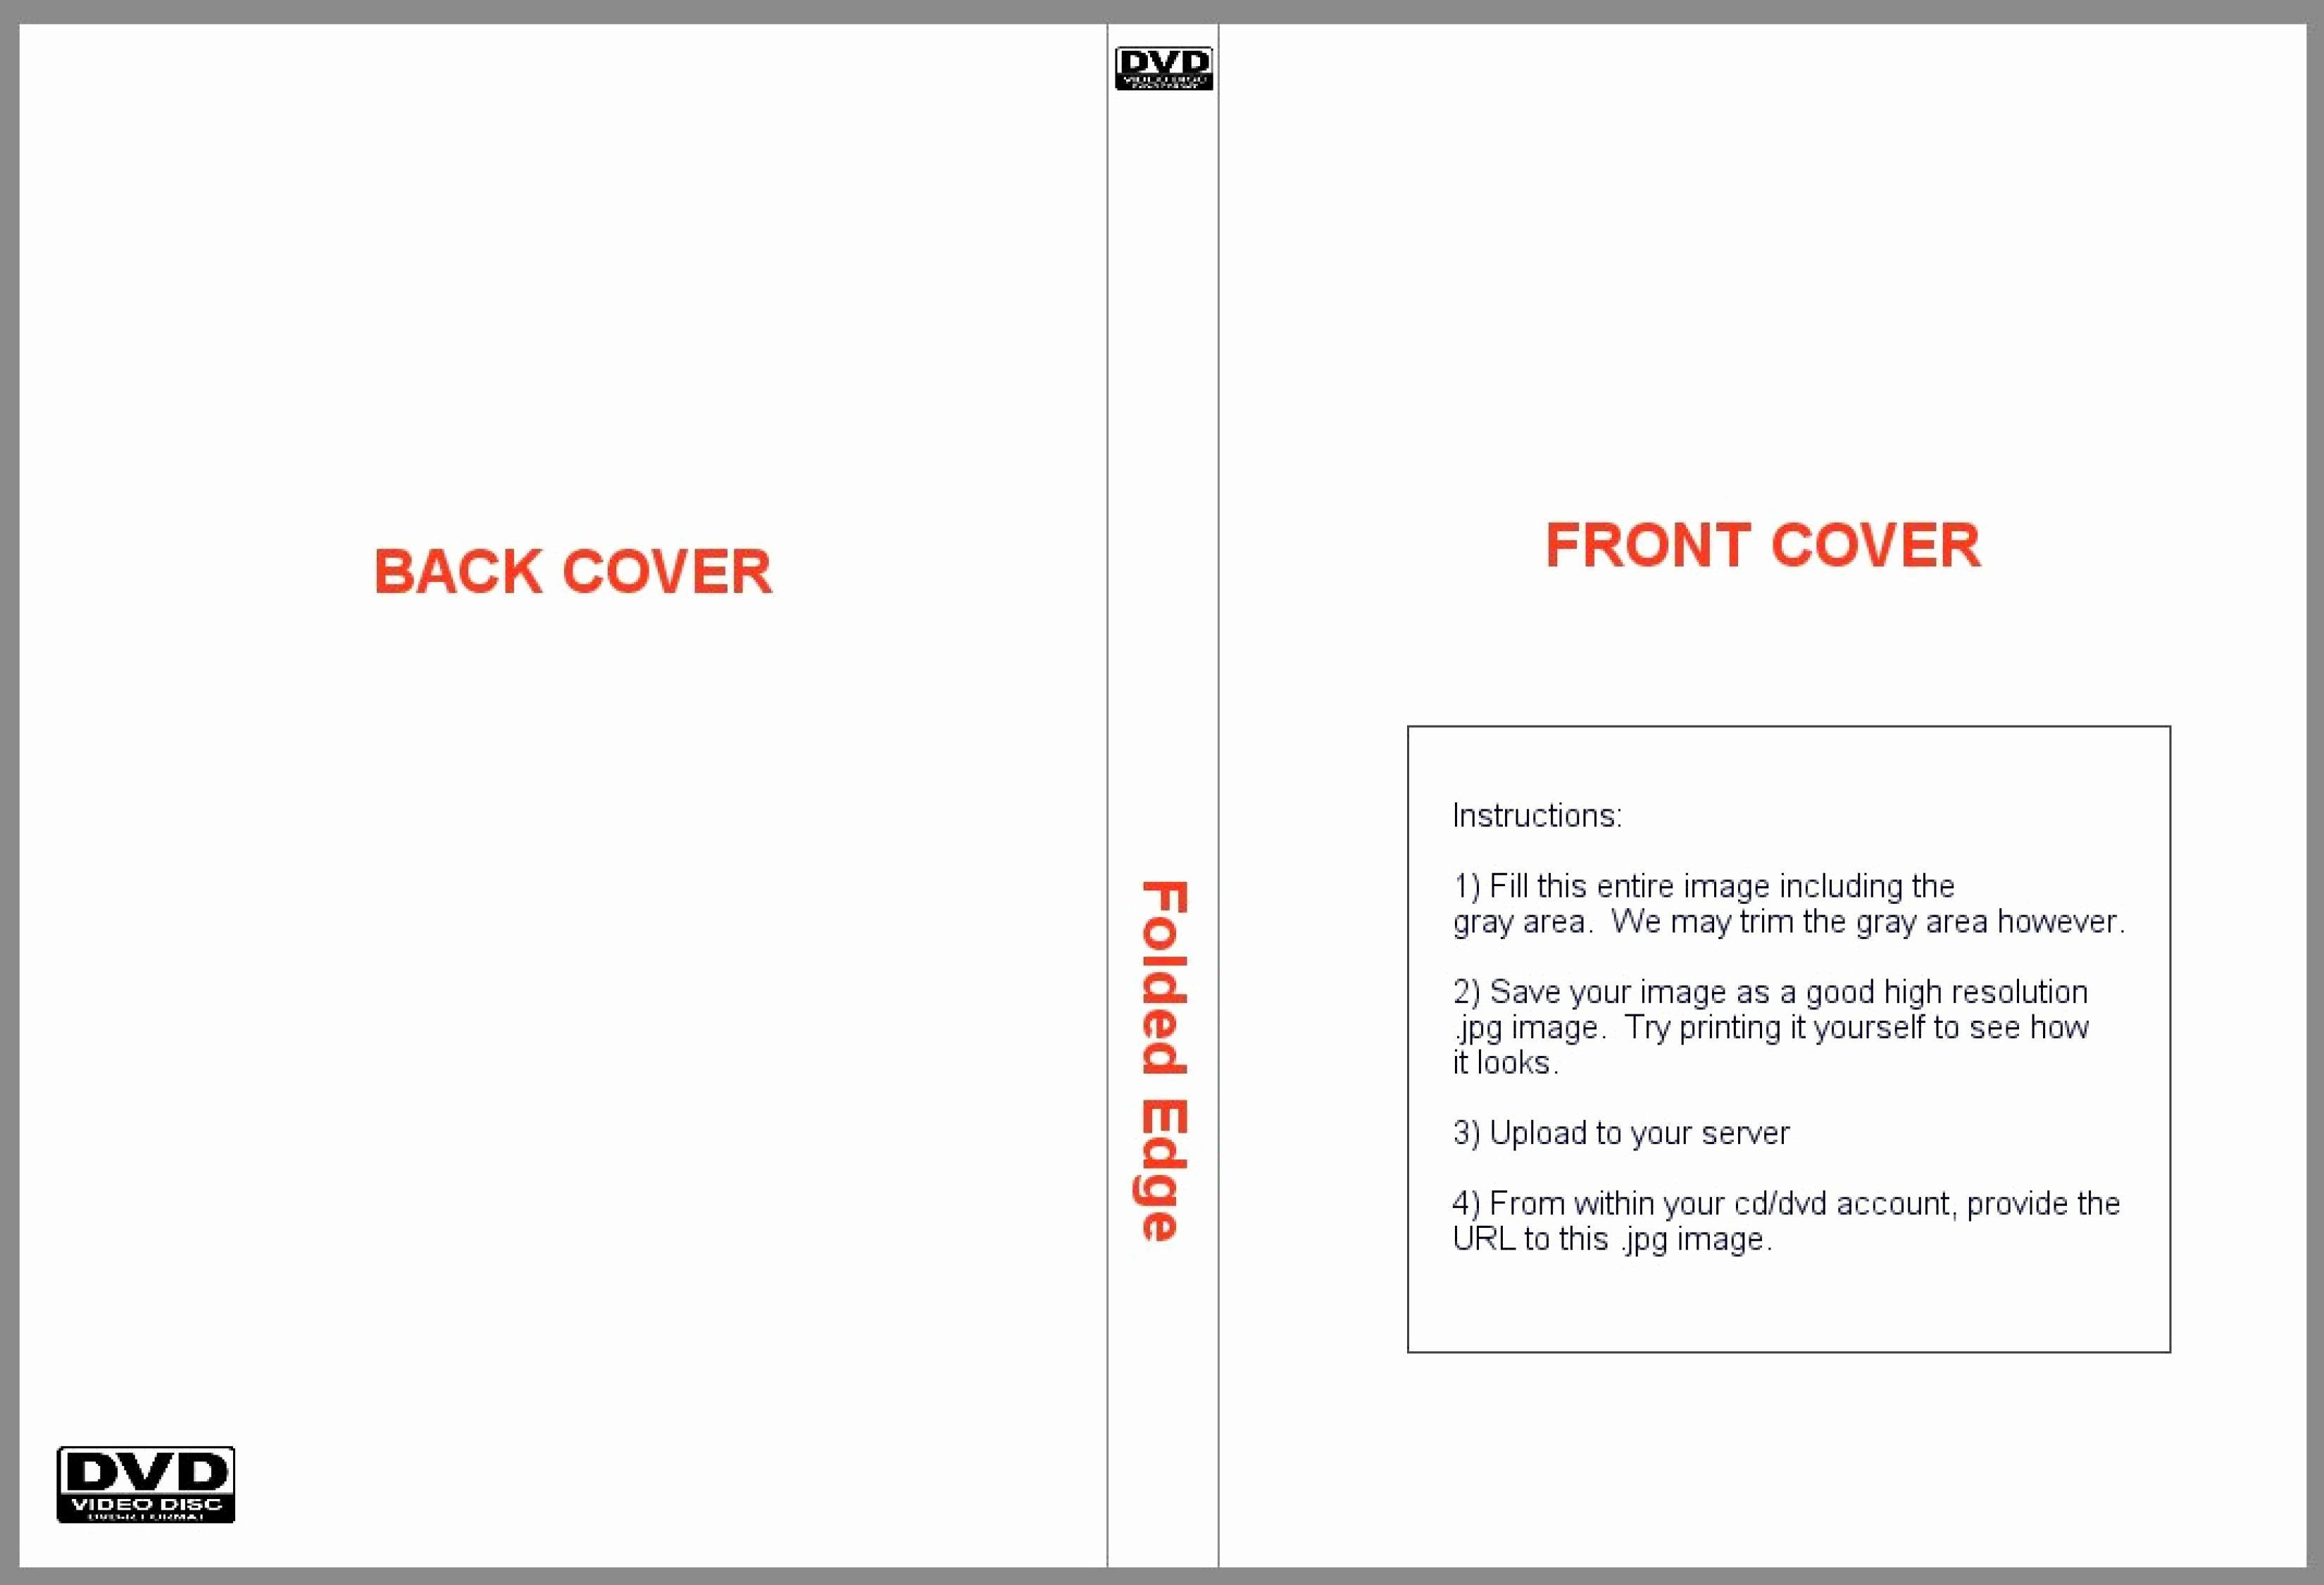 002 Remarkable Printable Cd Sleeve Template Inspiration  Free Case Cover Blank JewelFull